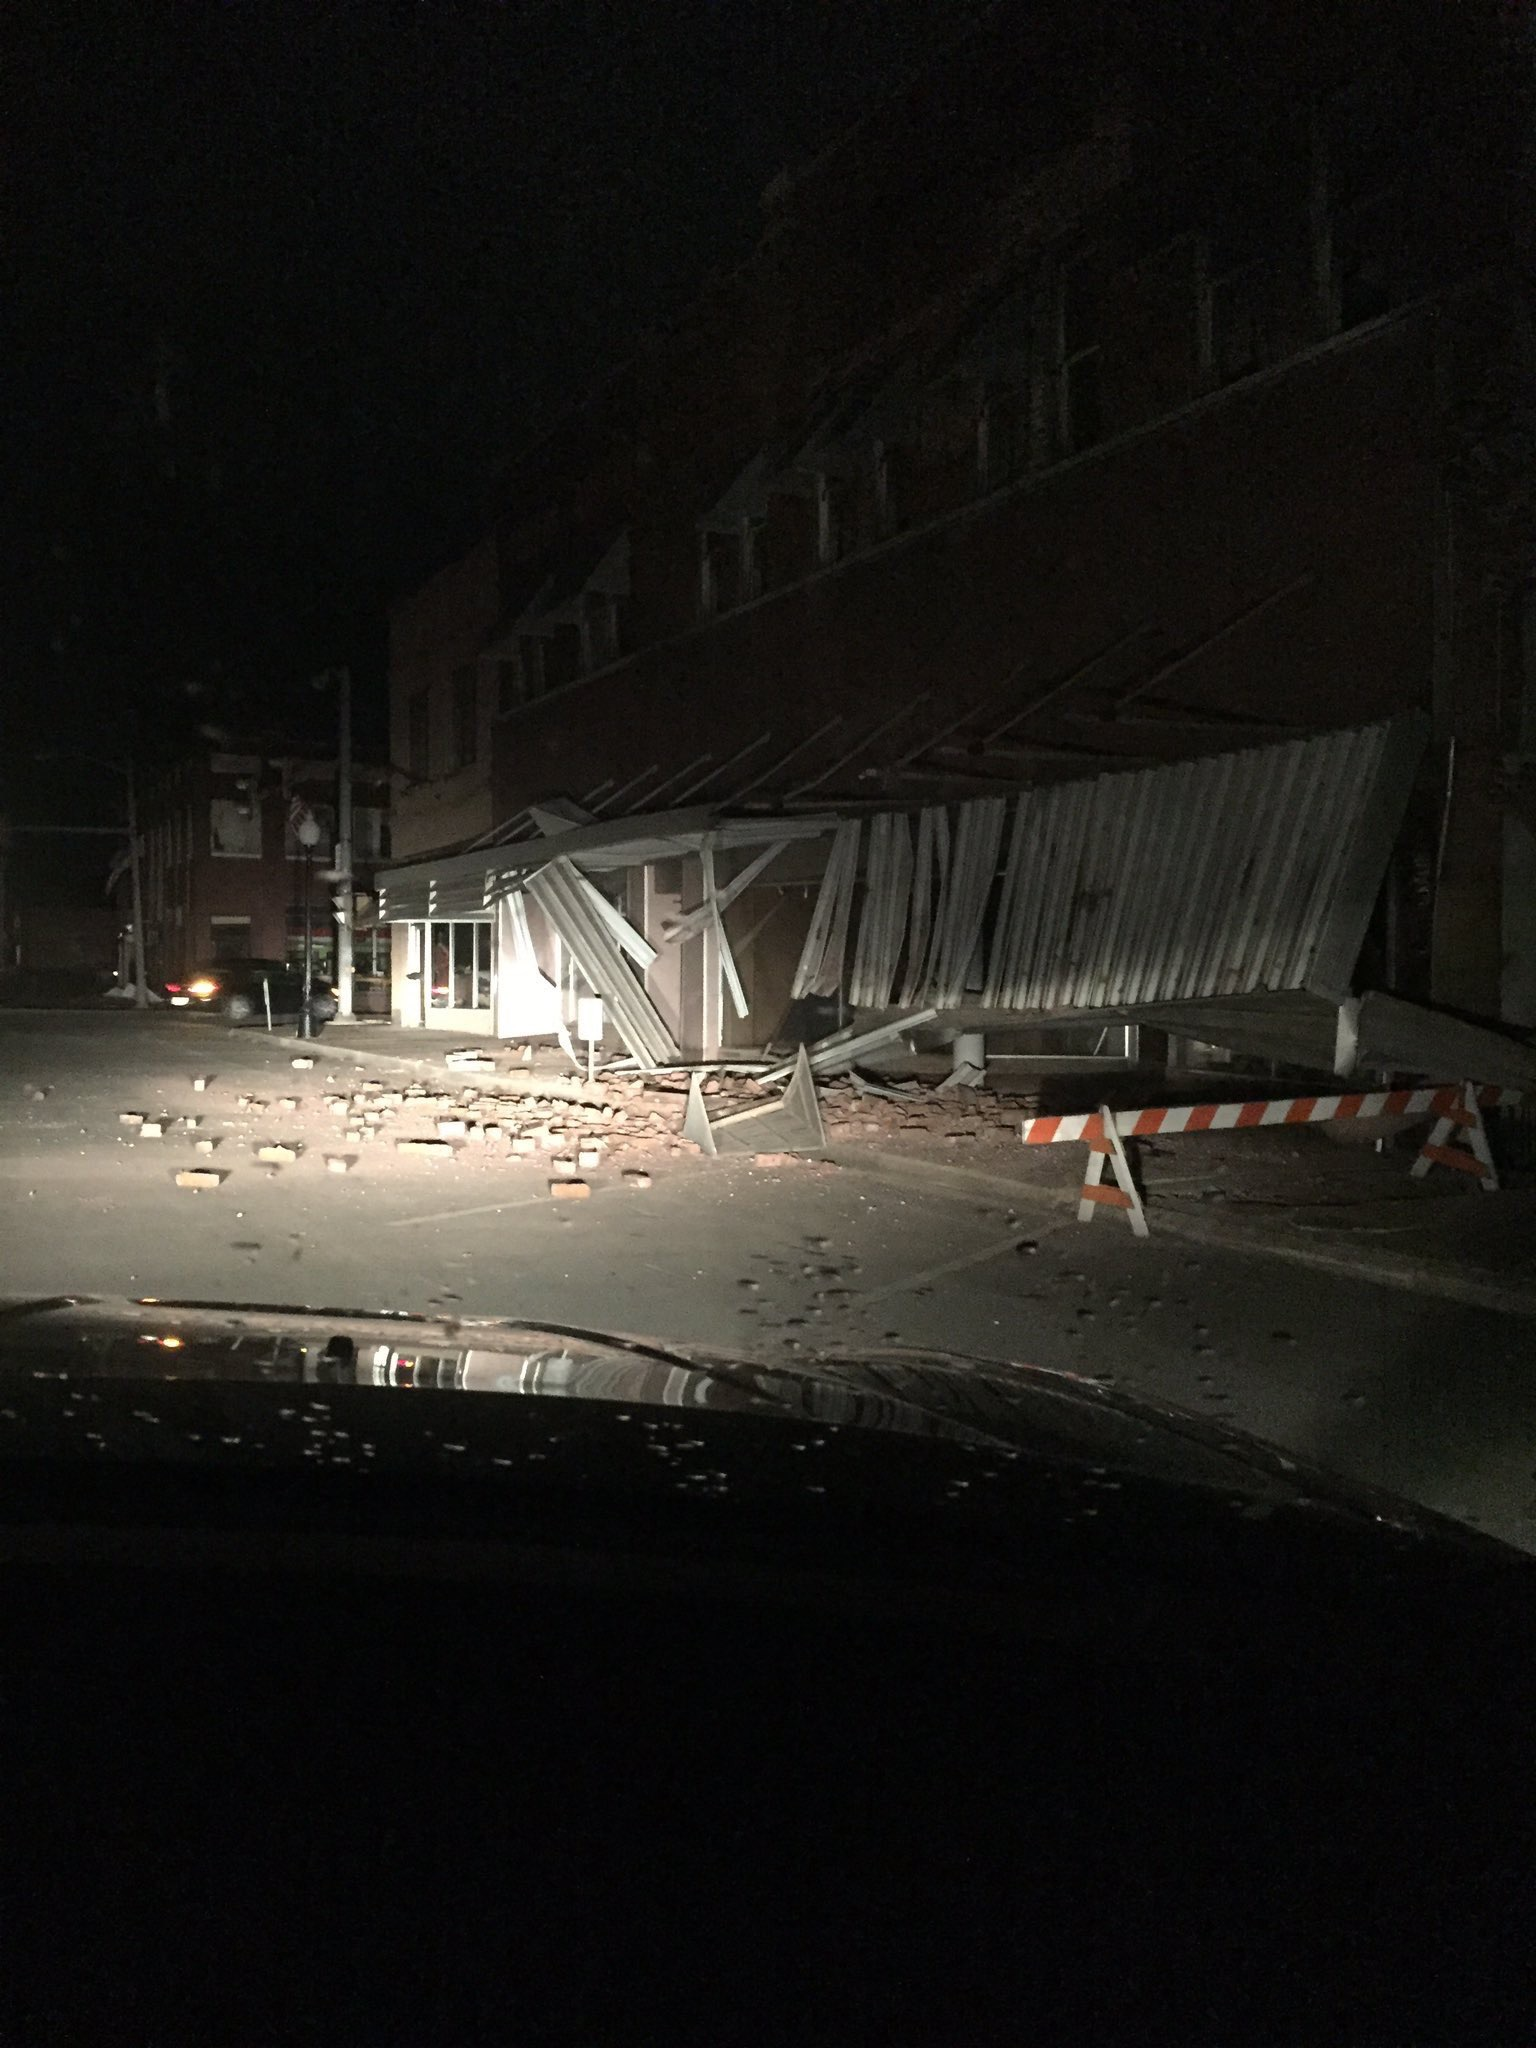 Cleveland Street after the earthquake in Cushing, Okla. According to the person who took the pictures, Cushing was evacuated.